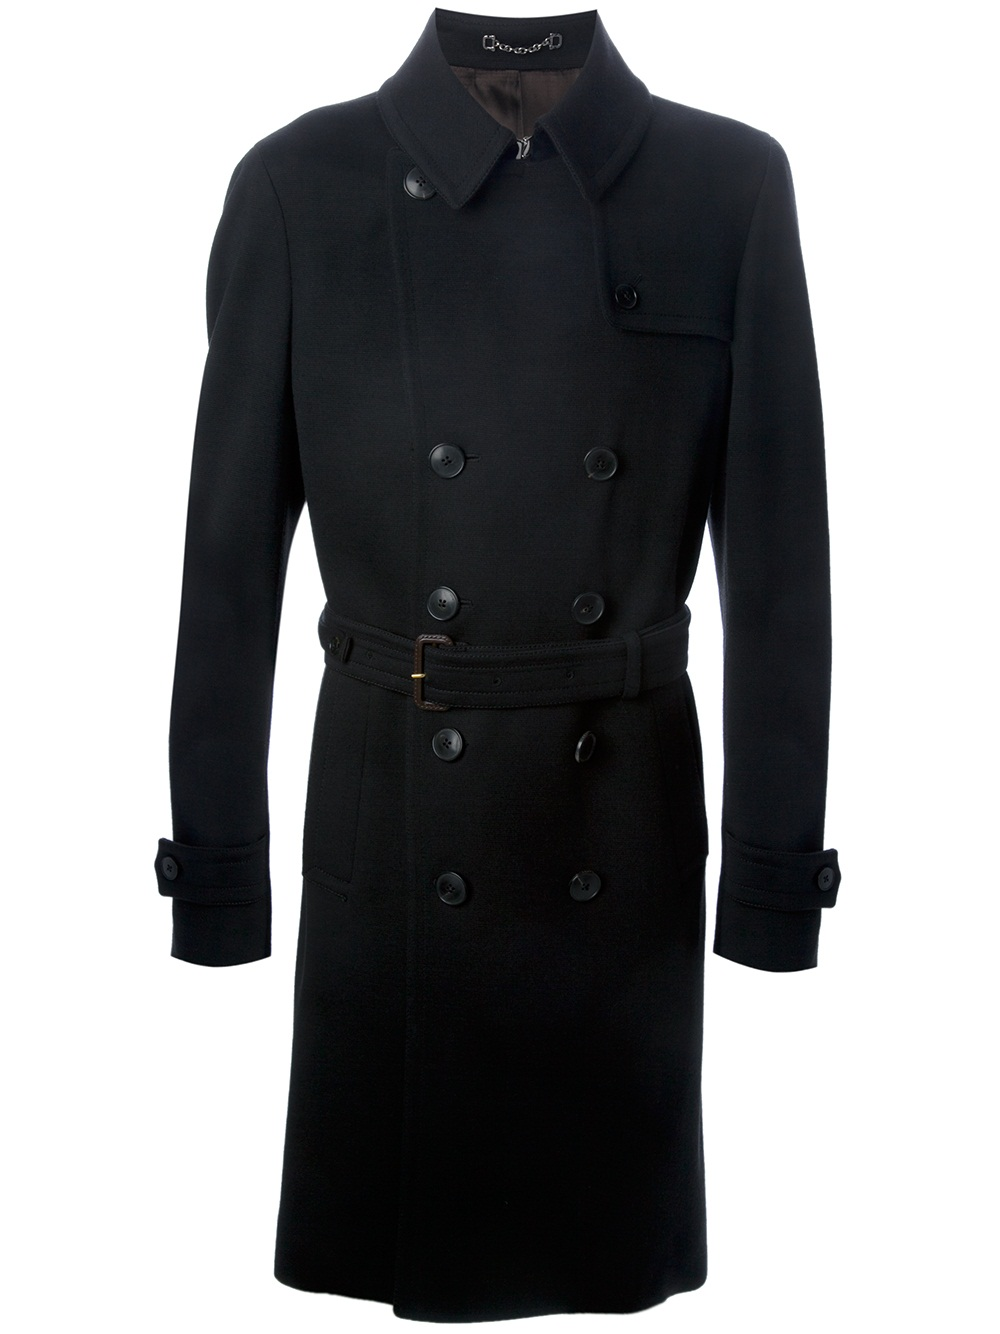 The essential style for the winter weather, London Fog's wool coats for men add sophistication and elegance to your style while helping you stay your warmest in the harshest weather.